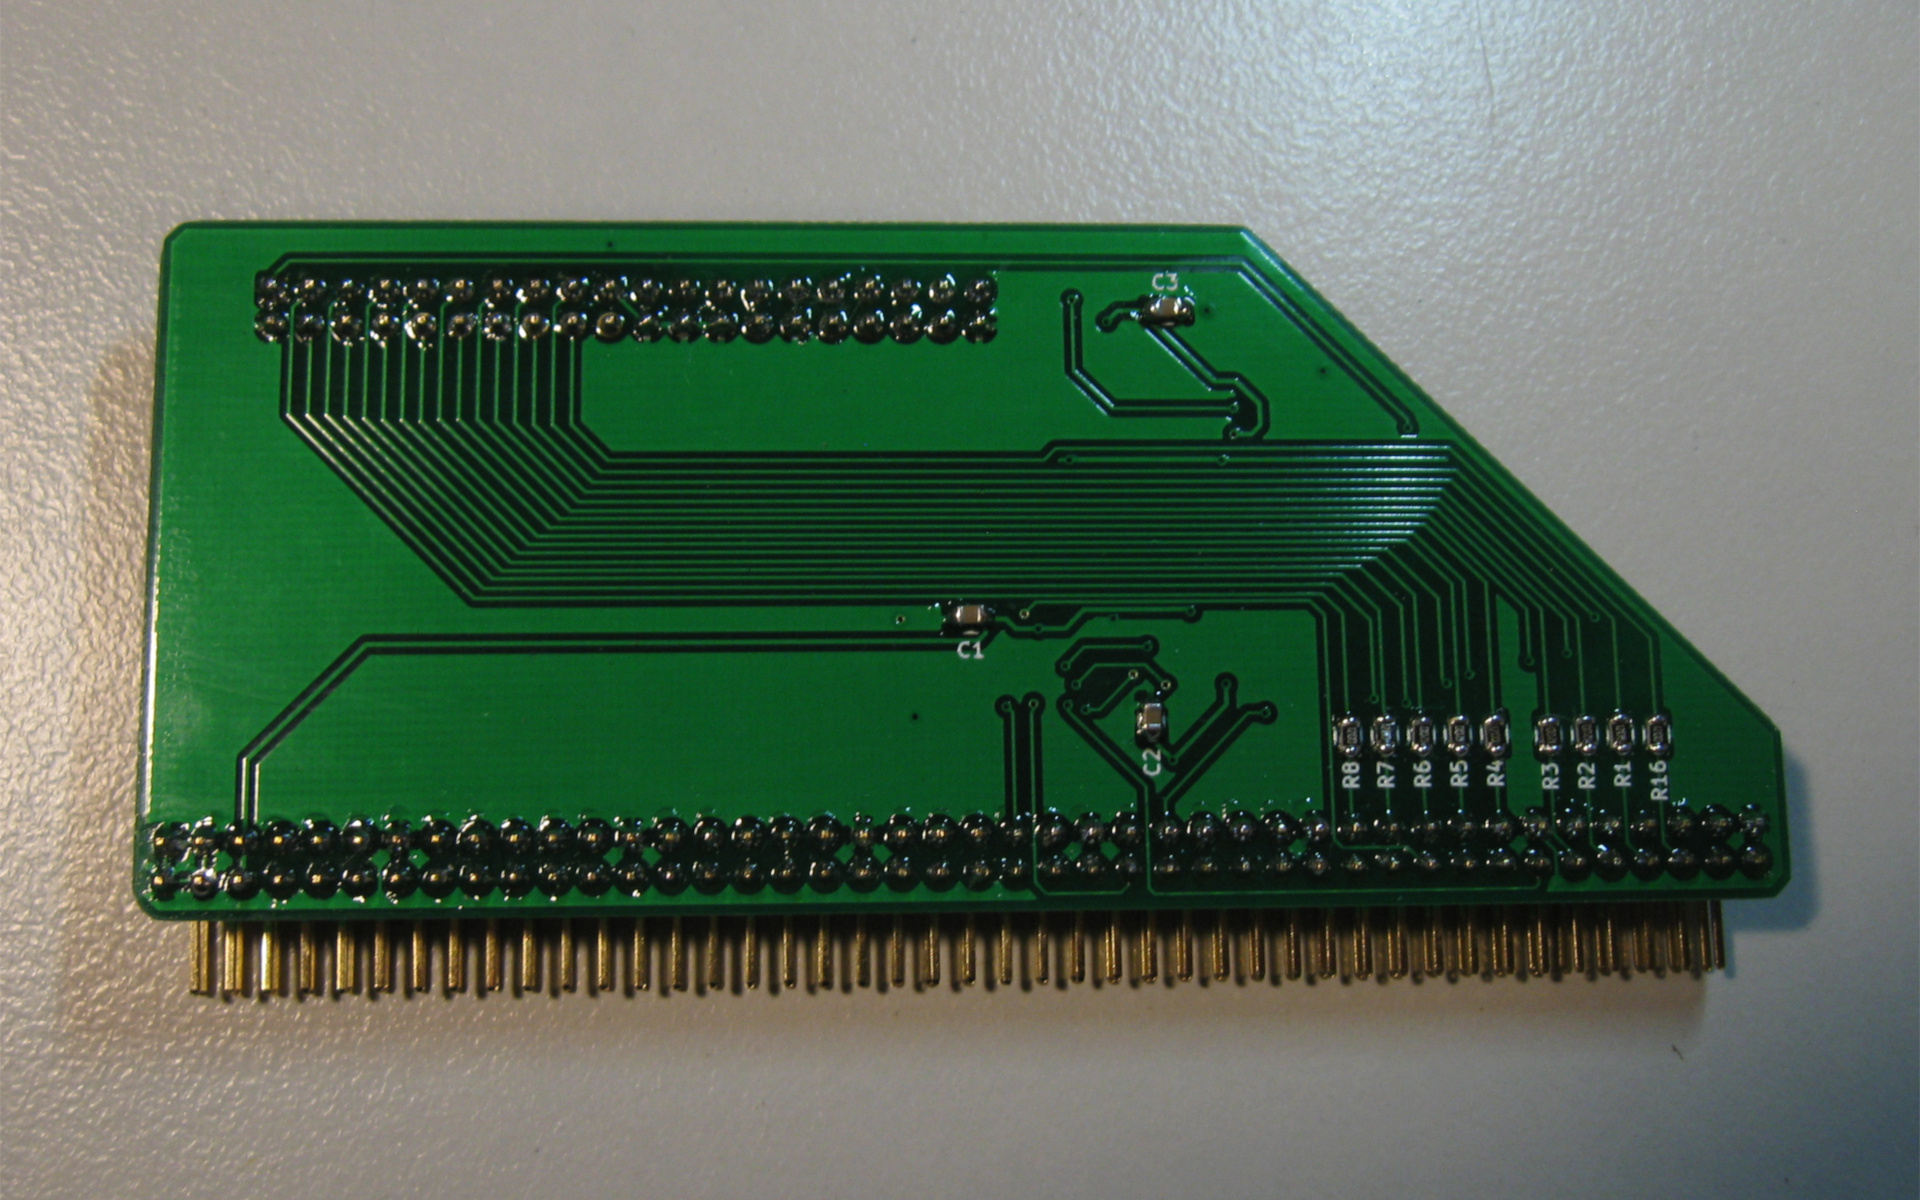 Amiga 500 Ata Hard Disk Interface Diagram Sector Free Download Wiring Schematic Pcb Front Back